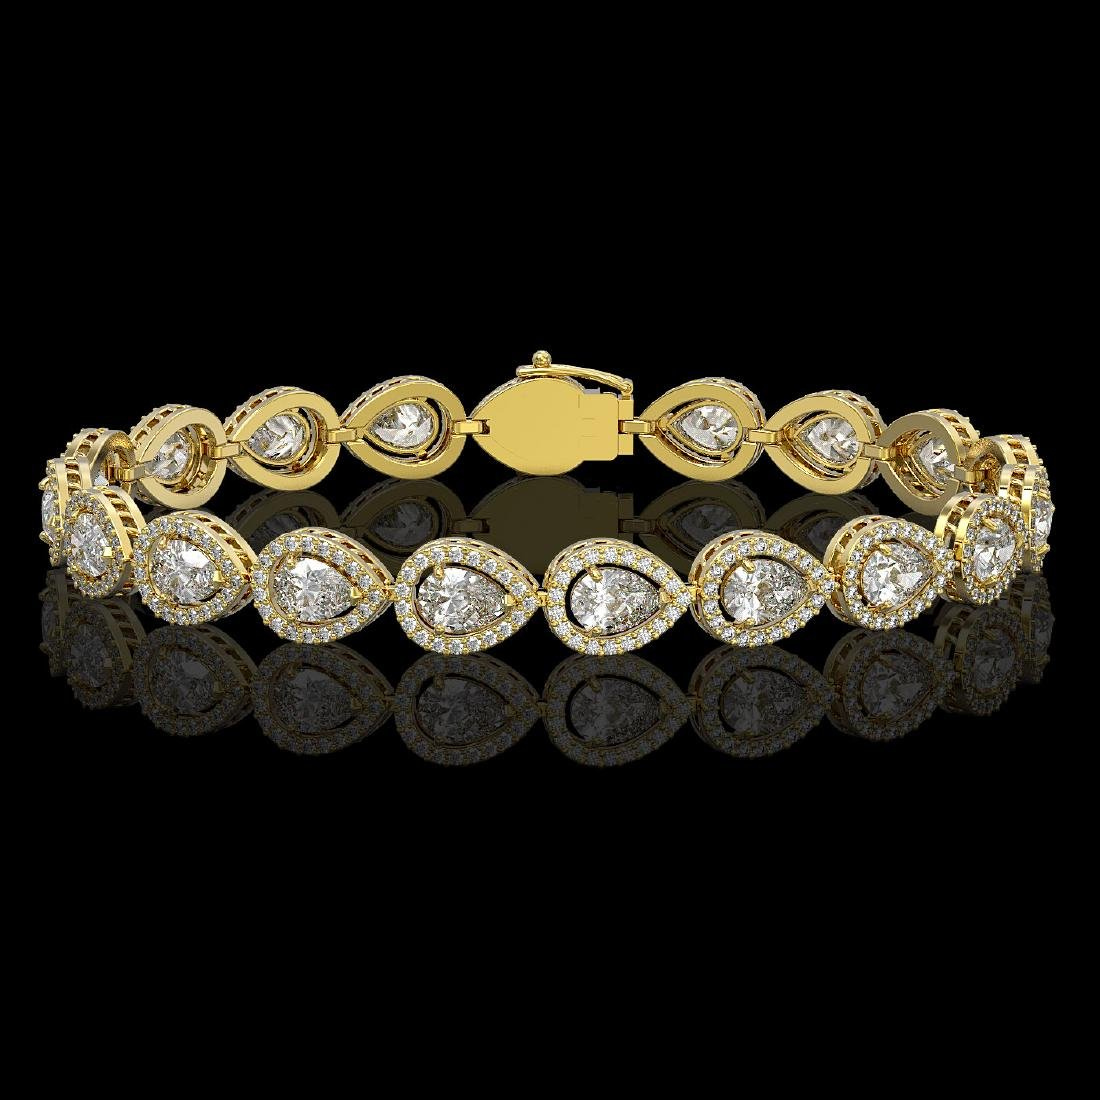 12.38 CTW Pear Diamond Designer Bracelet 18K Yellow